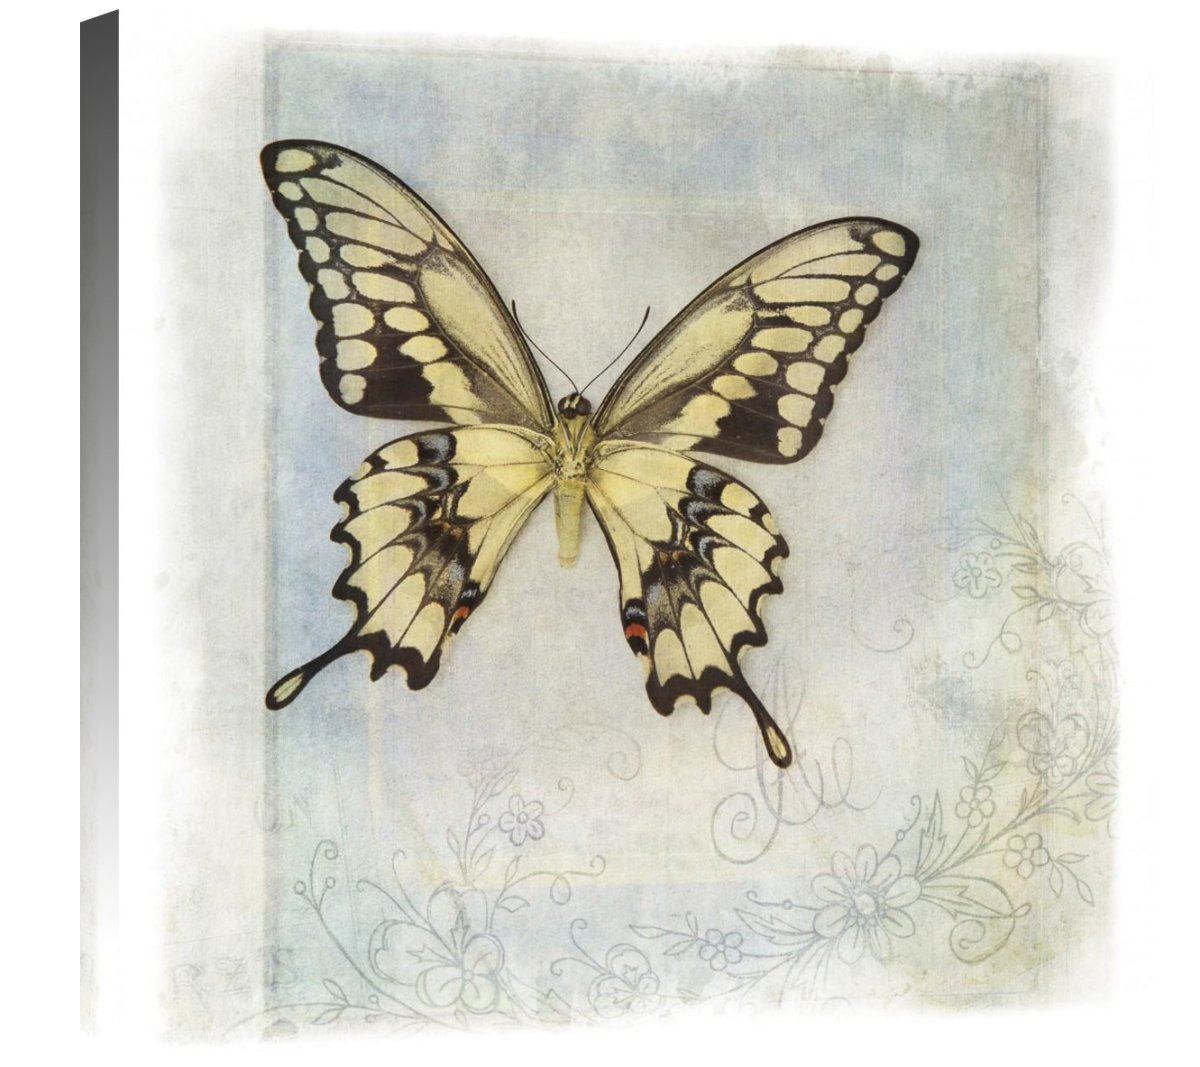 Global Gallery Debra Van Swearingen Floating Butterfly V Giclee Stretched Canvas Artwork 24 x 24